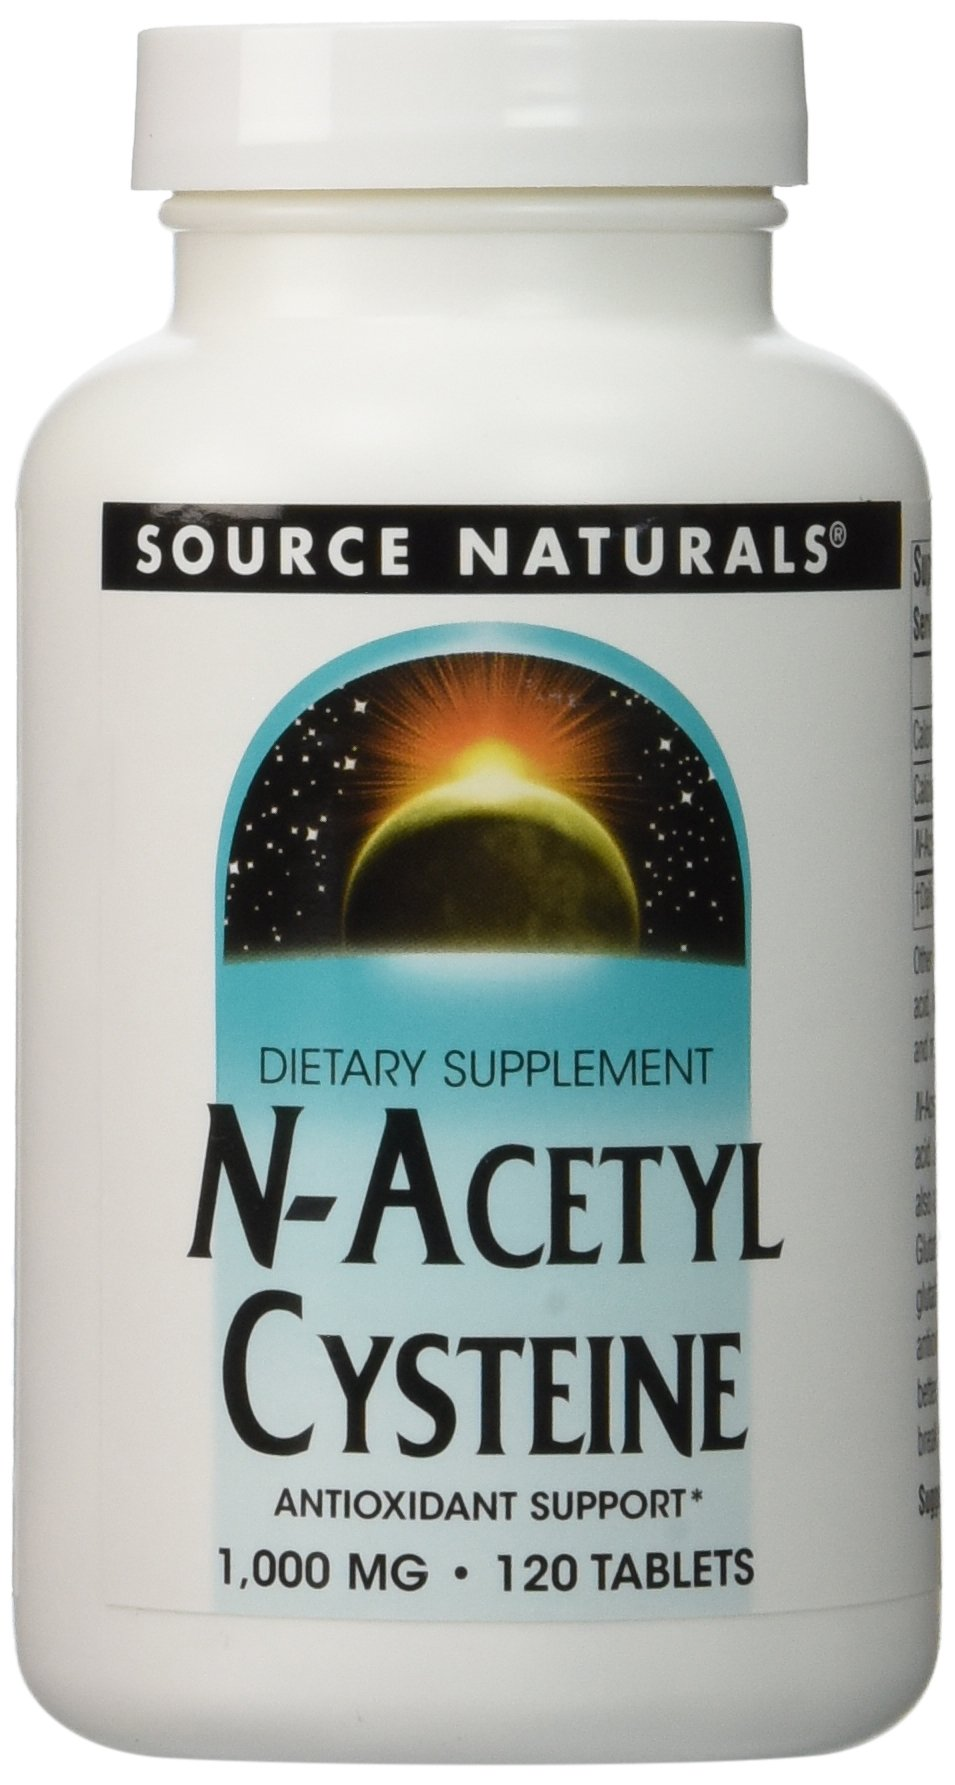 Source Naturals N-Acetyl Cysteine 1000mg , 120 Tablets - 2 pack